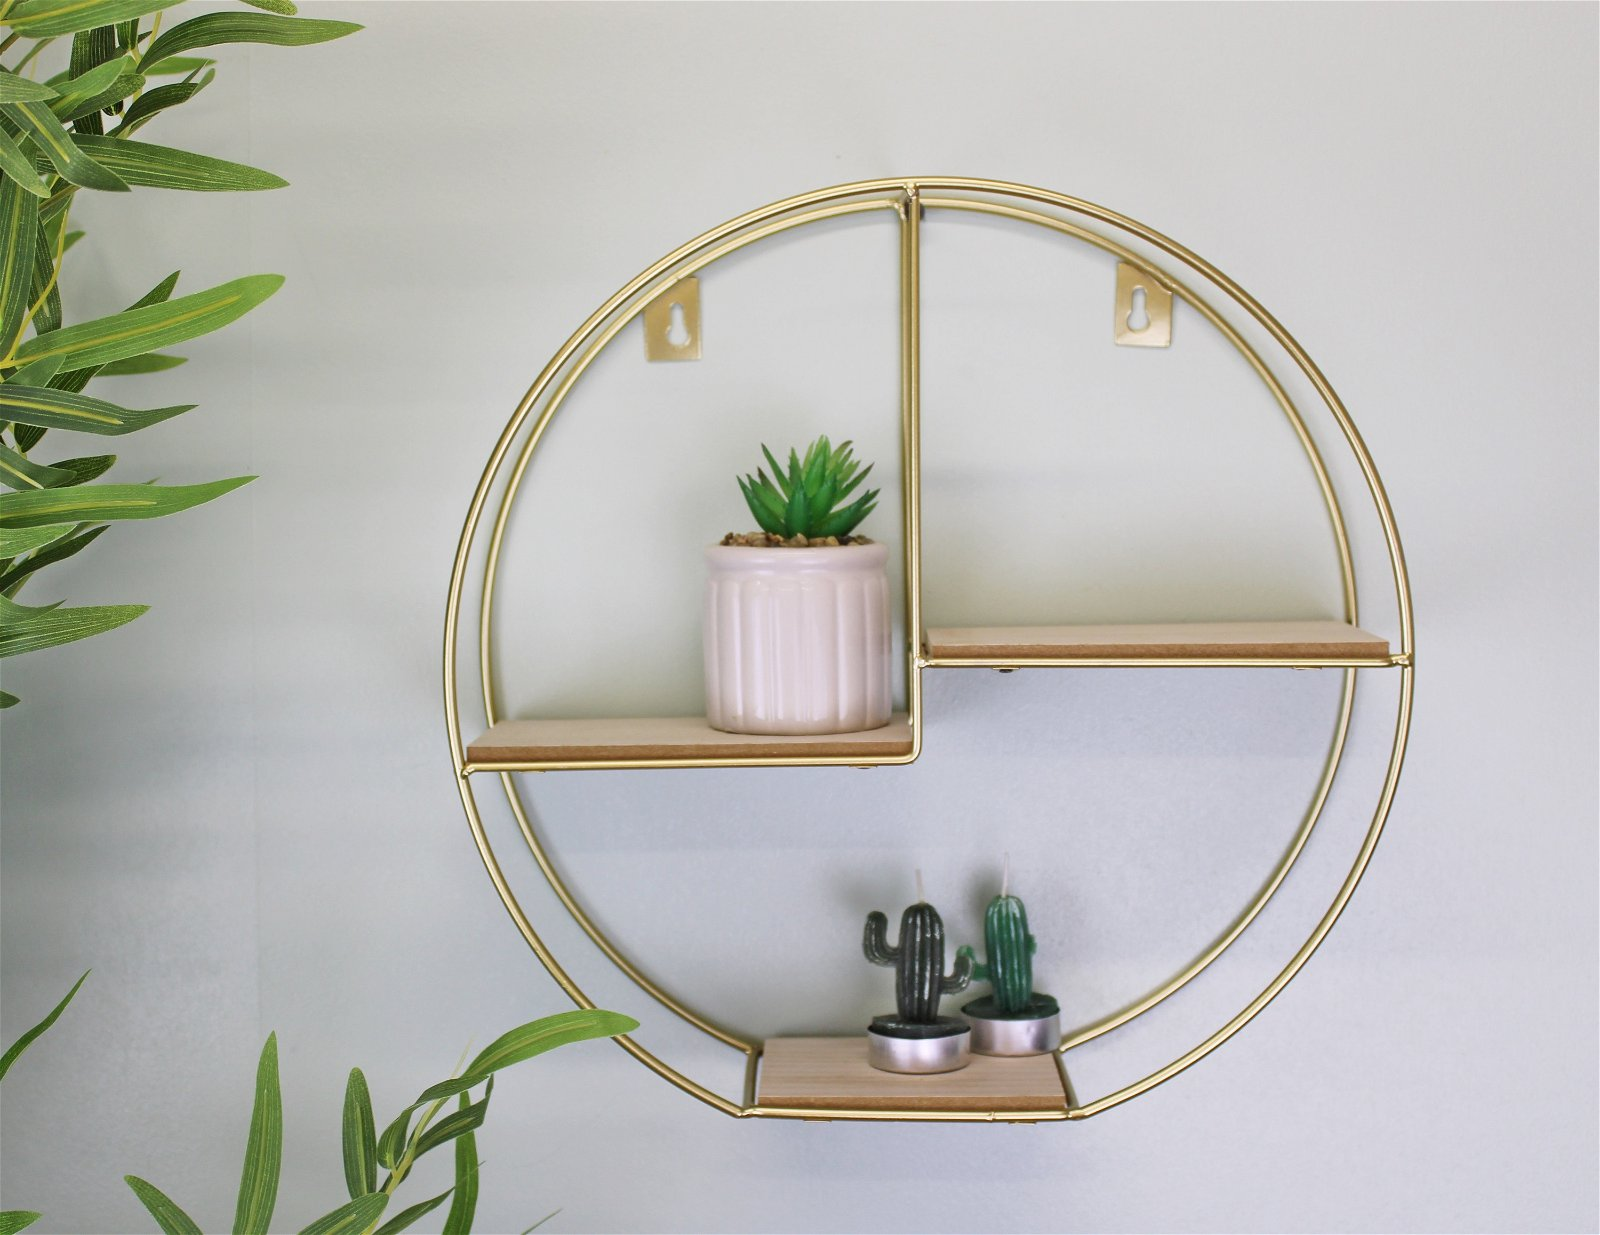 Gold Round Metal Wall Shelf with 3 Shelves, 34cm